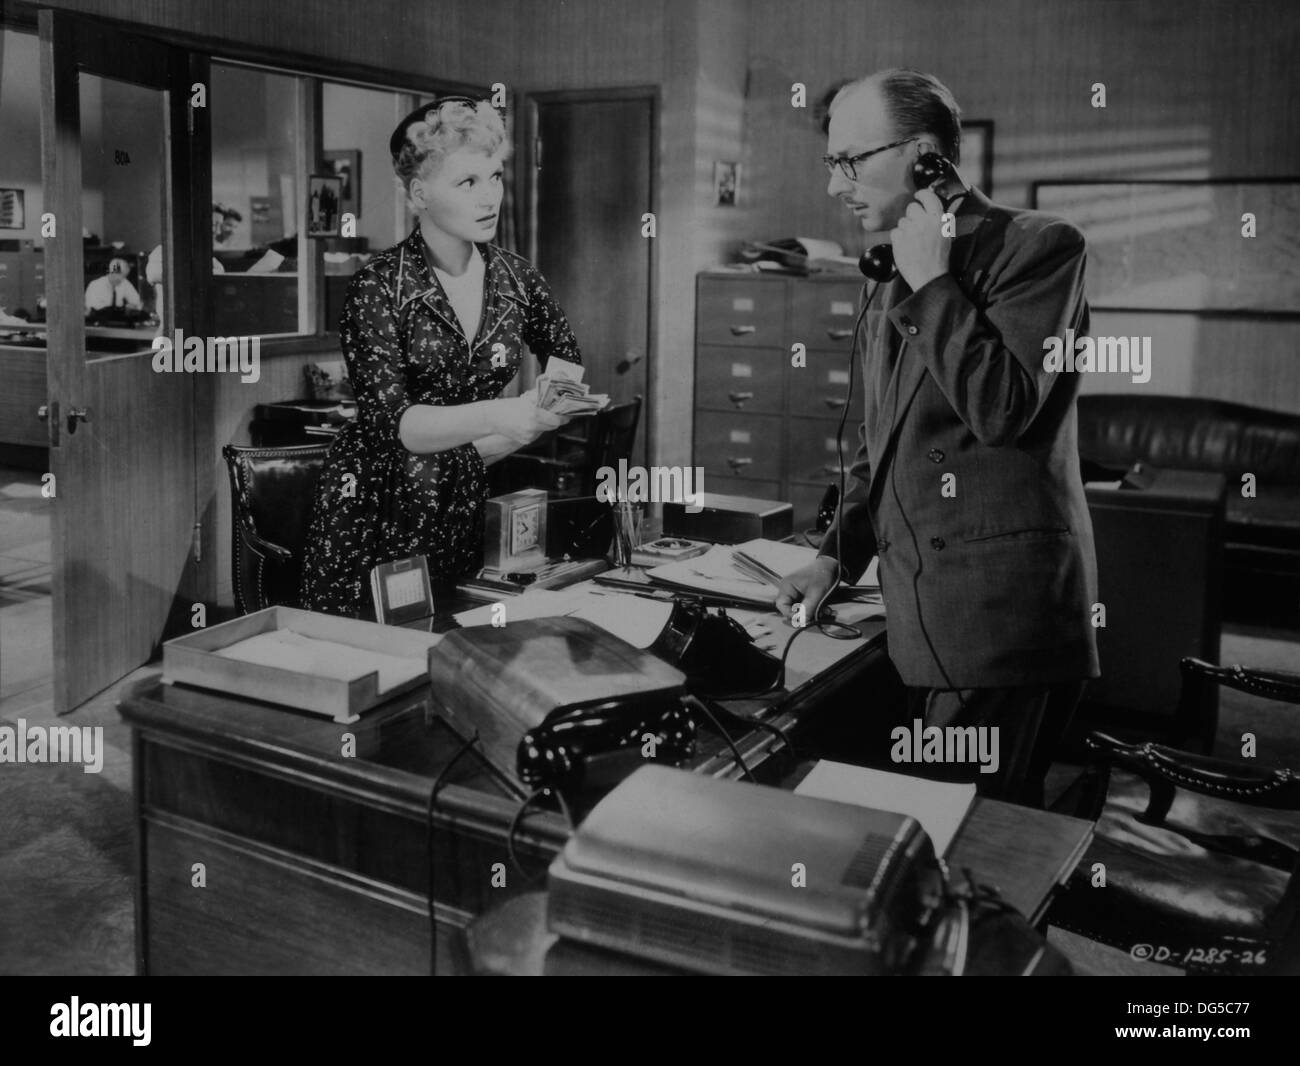 Judy Holliday and Vaughn Taylor, On-Set of the Film, It Should Happen to You, 1954 - Stock Image